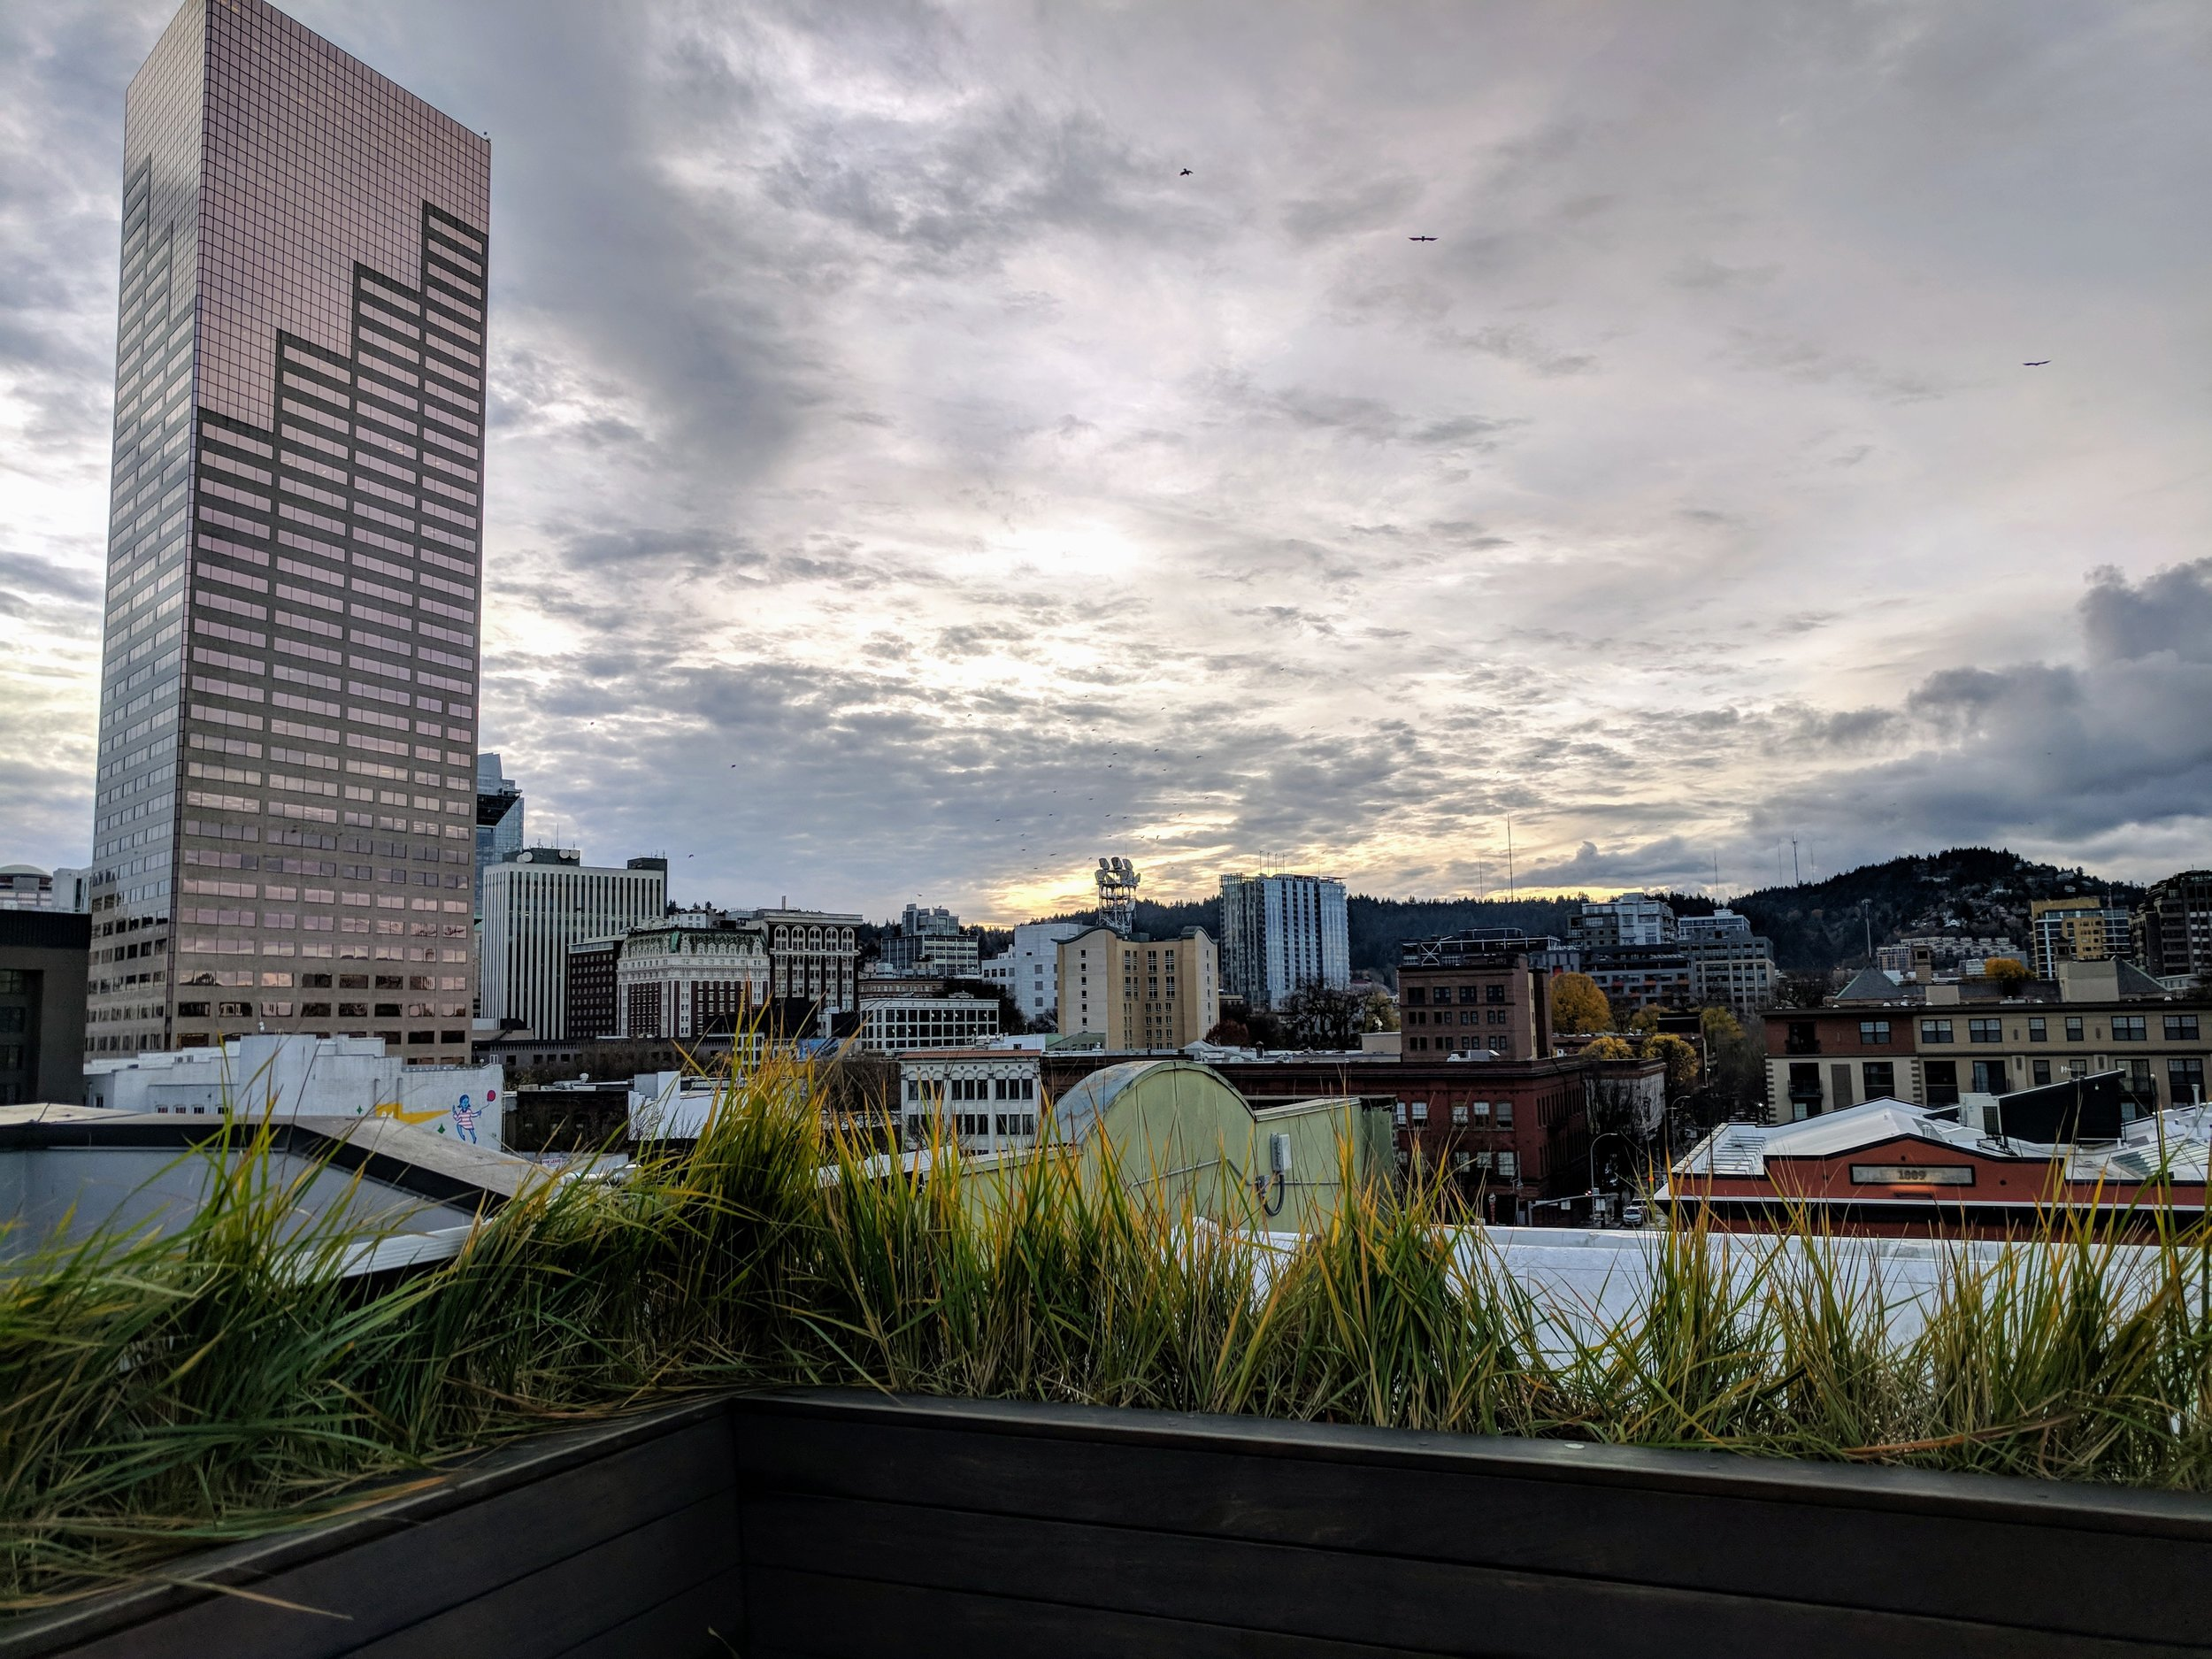 society-hotel-rooftop-view.jpg